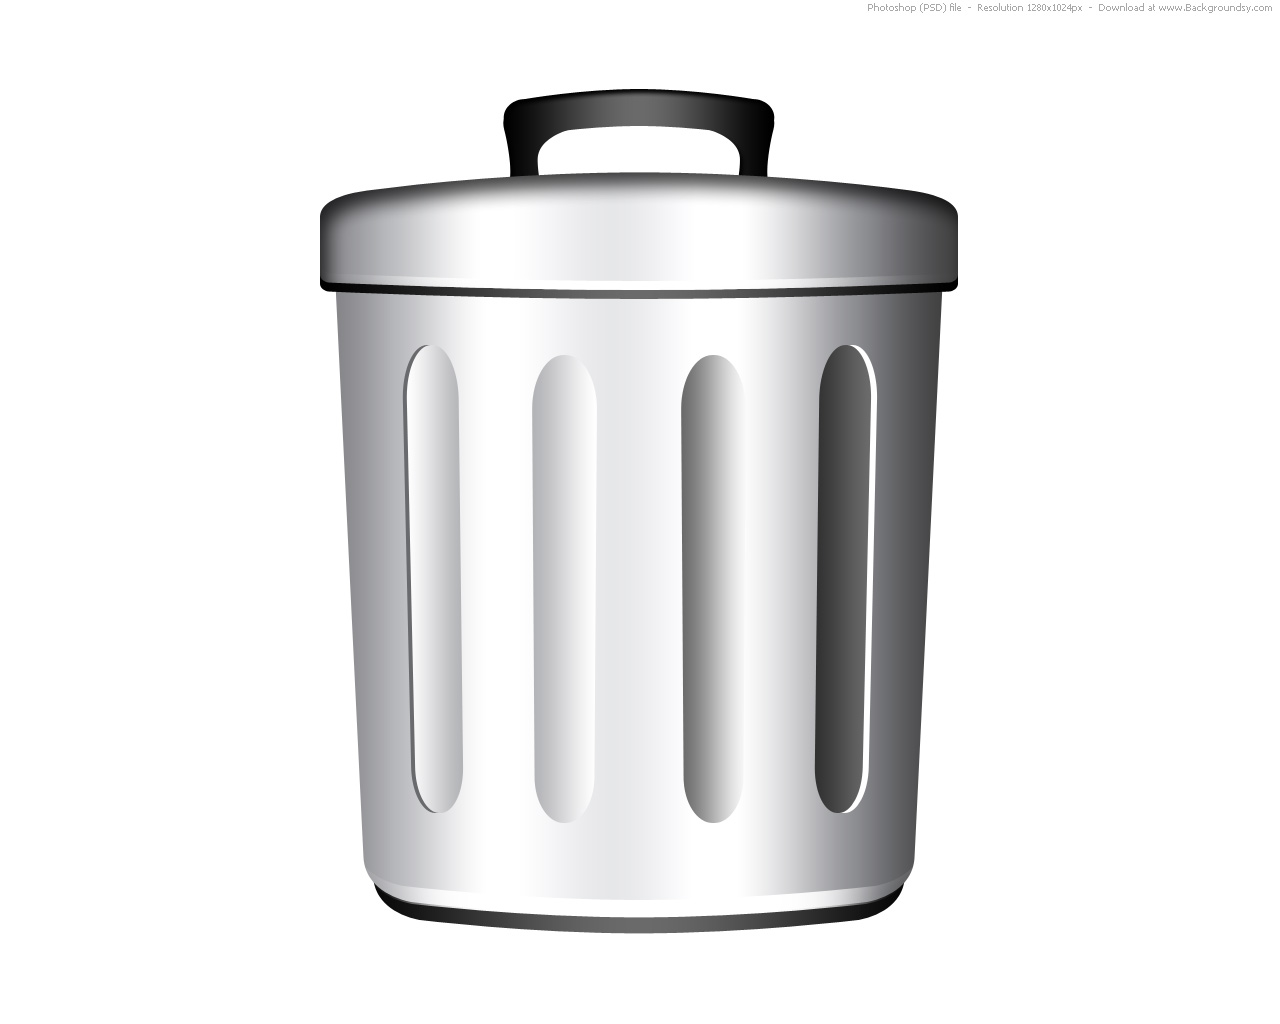 Trash can icon (PSD) | Backgroundsy.com